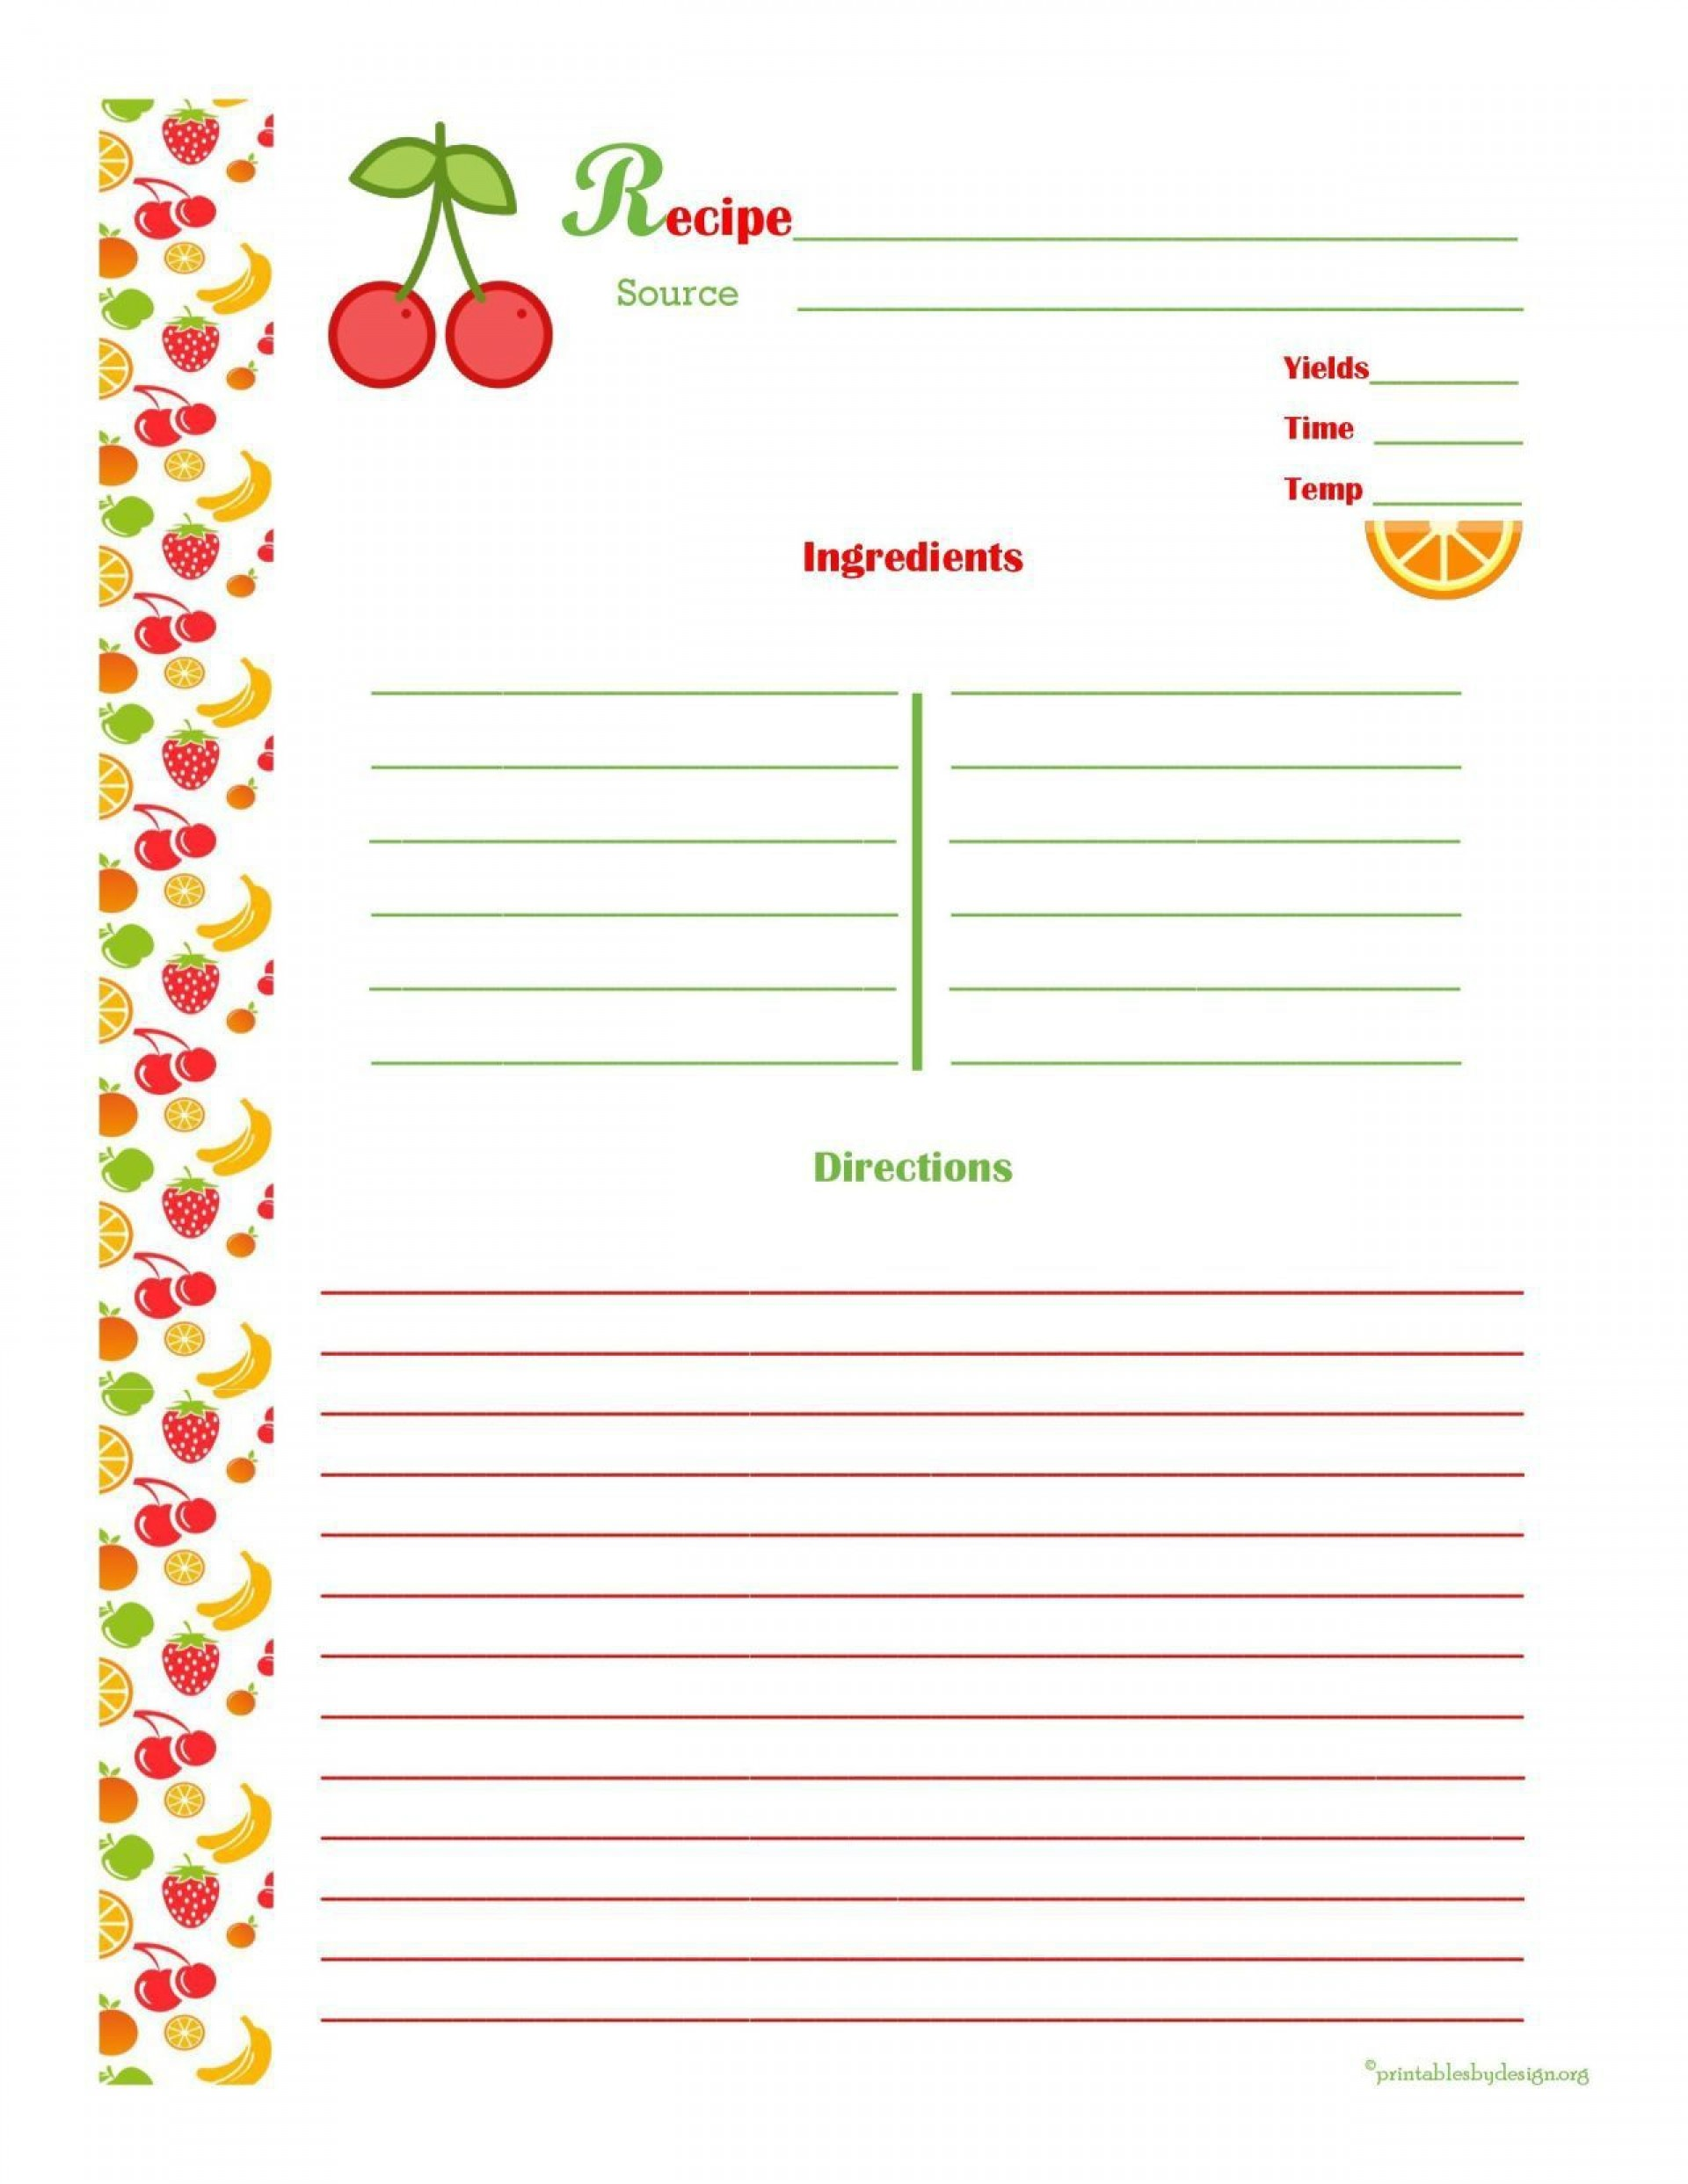 001 Fascinating Editable Recipe Card Template High Definition  Free For Microsoft Word 4x6 Page1920